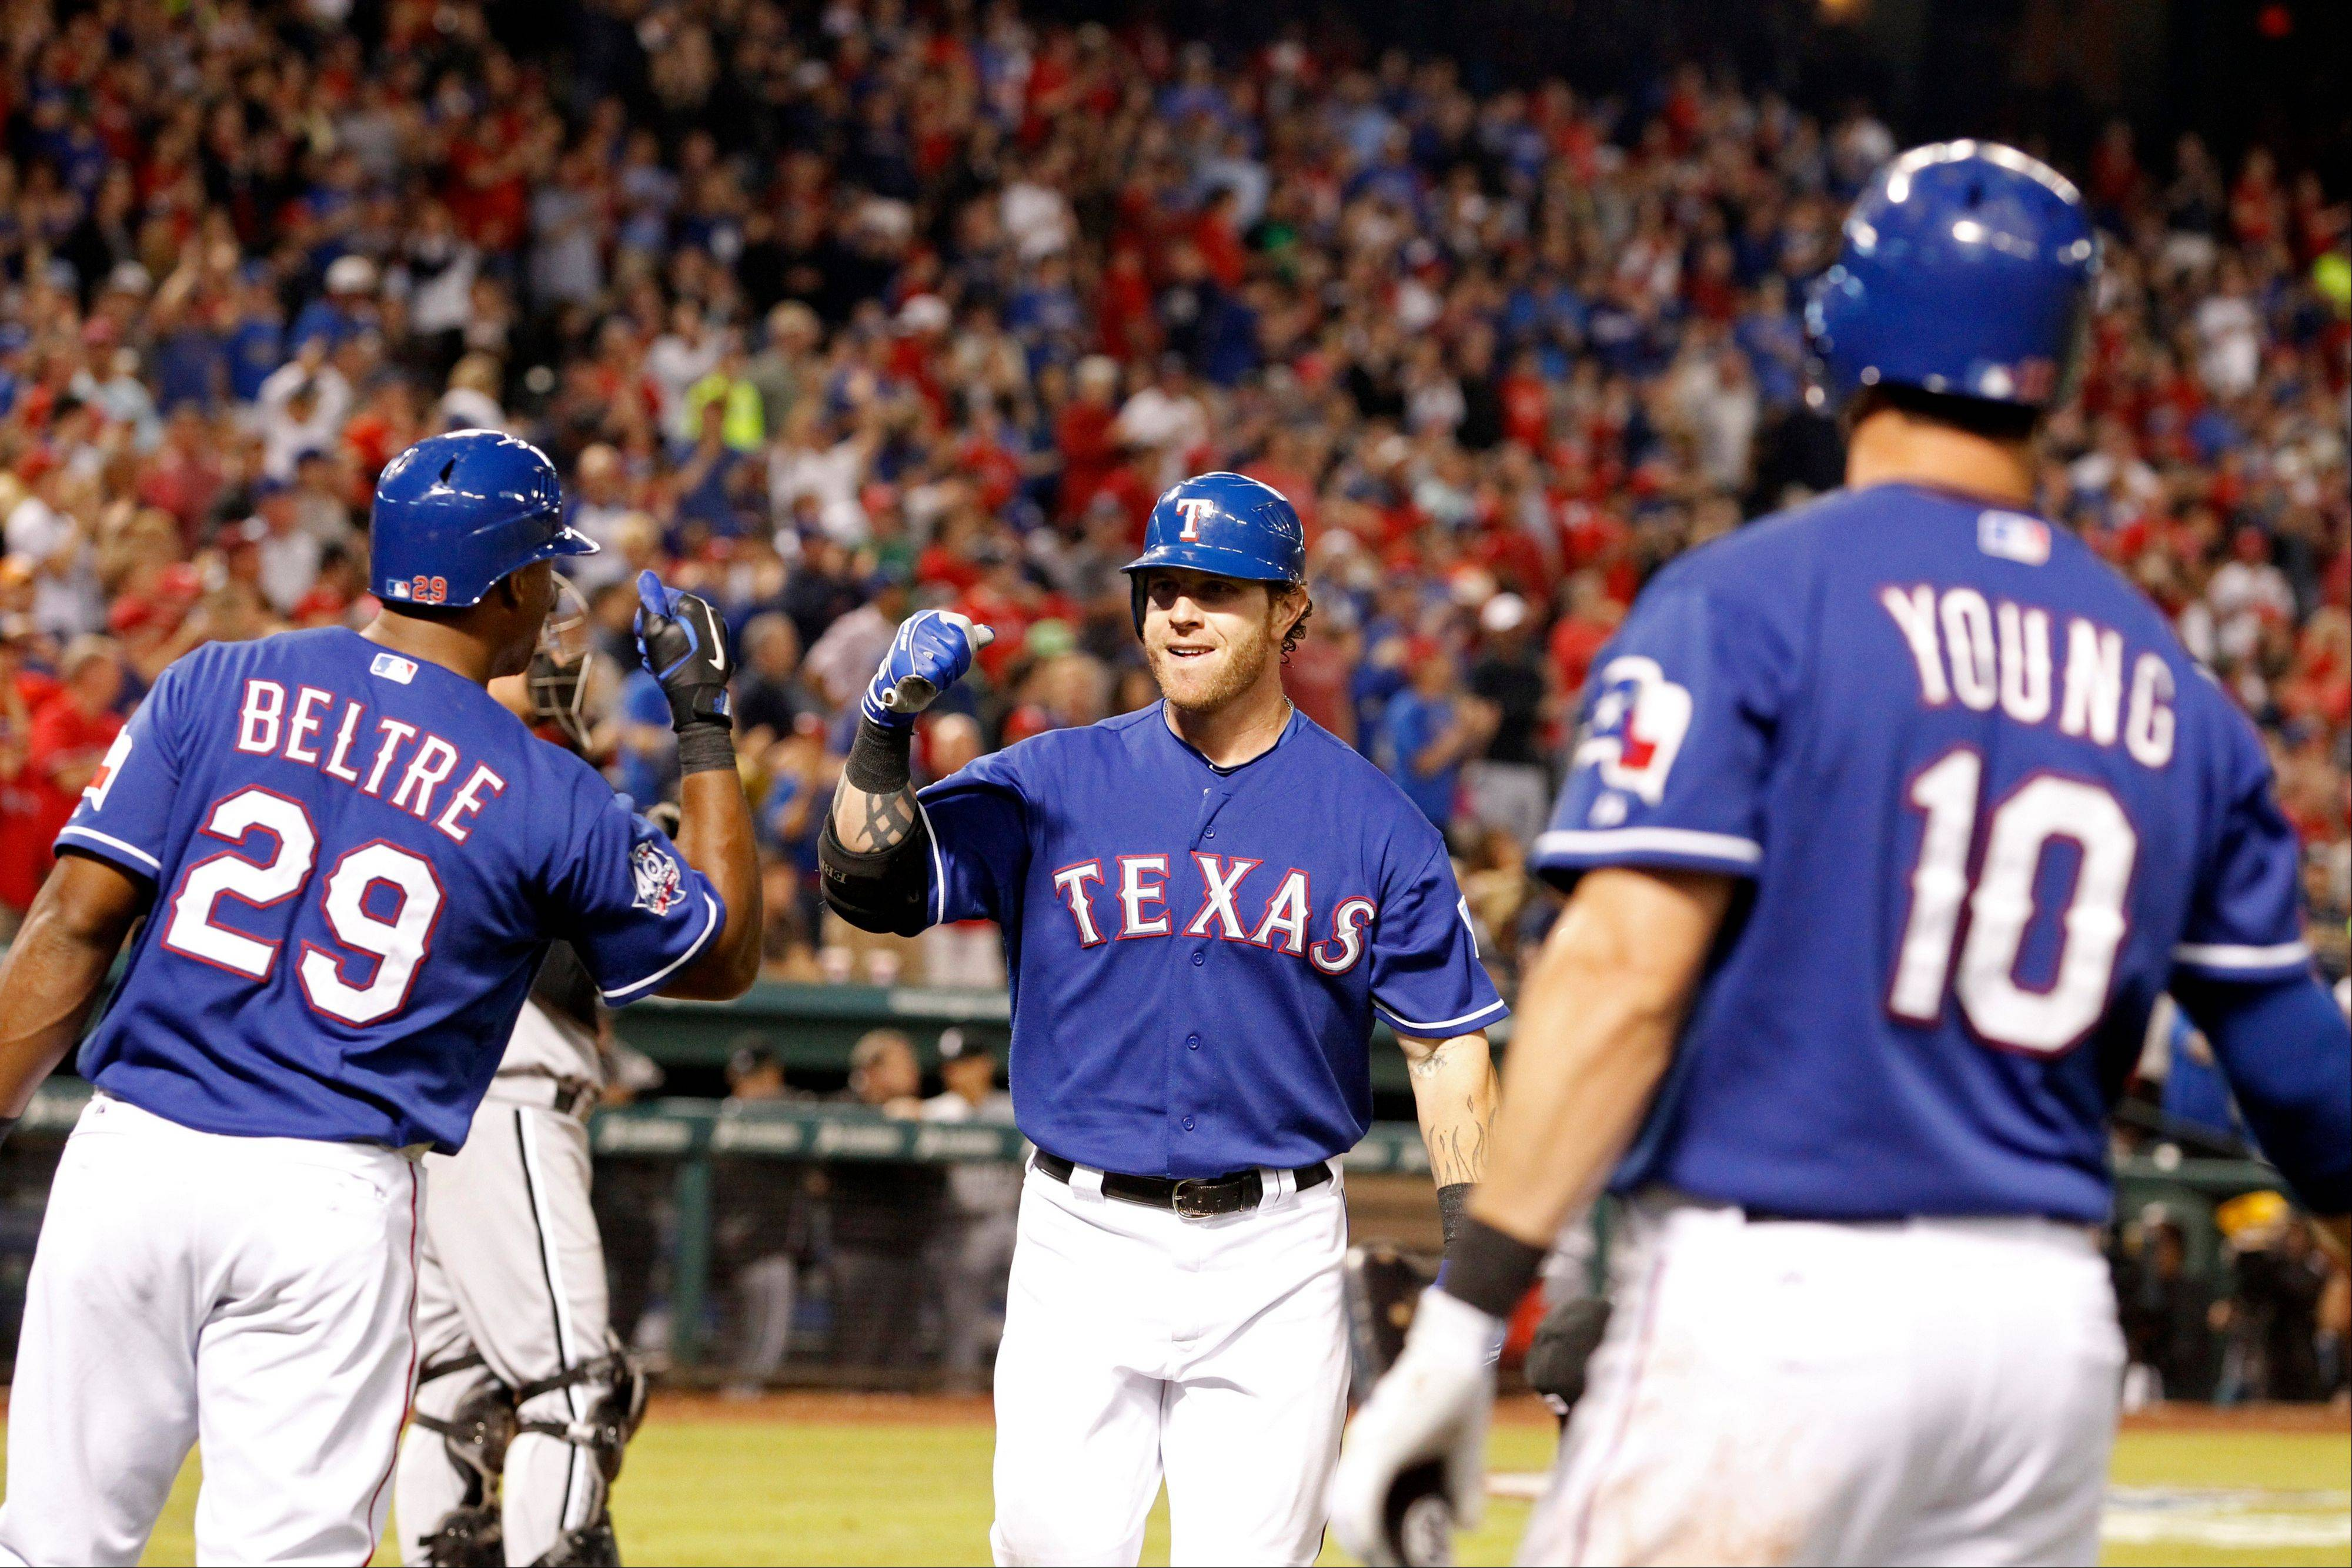 Texas Rangers Josh Hamilton, center, celebrates with teammates Adrian Beltre (29) and Michael Young (10) Sunday after he hit a home run in the sixth inning against the White Sox.